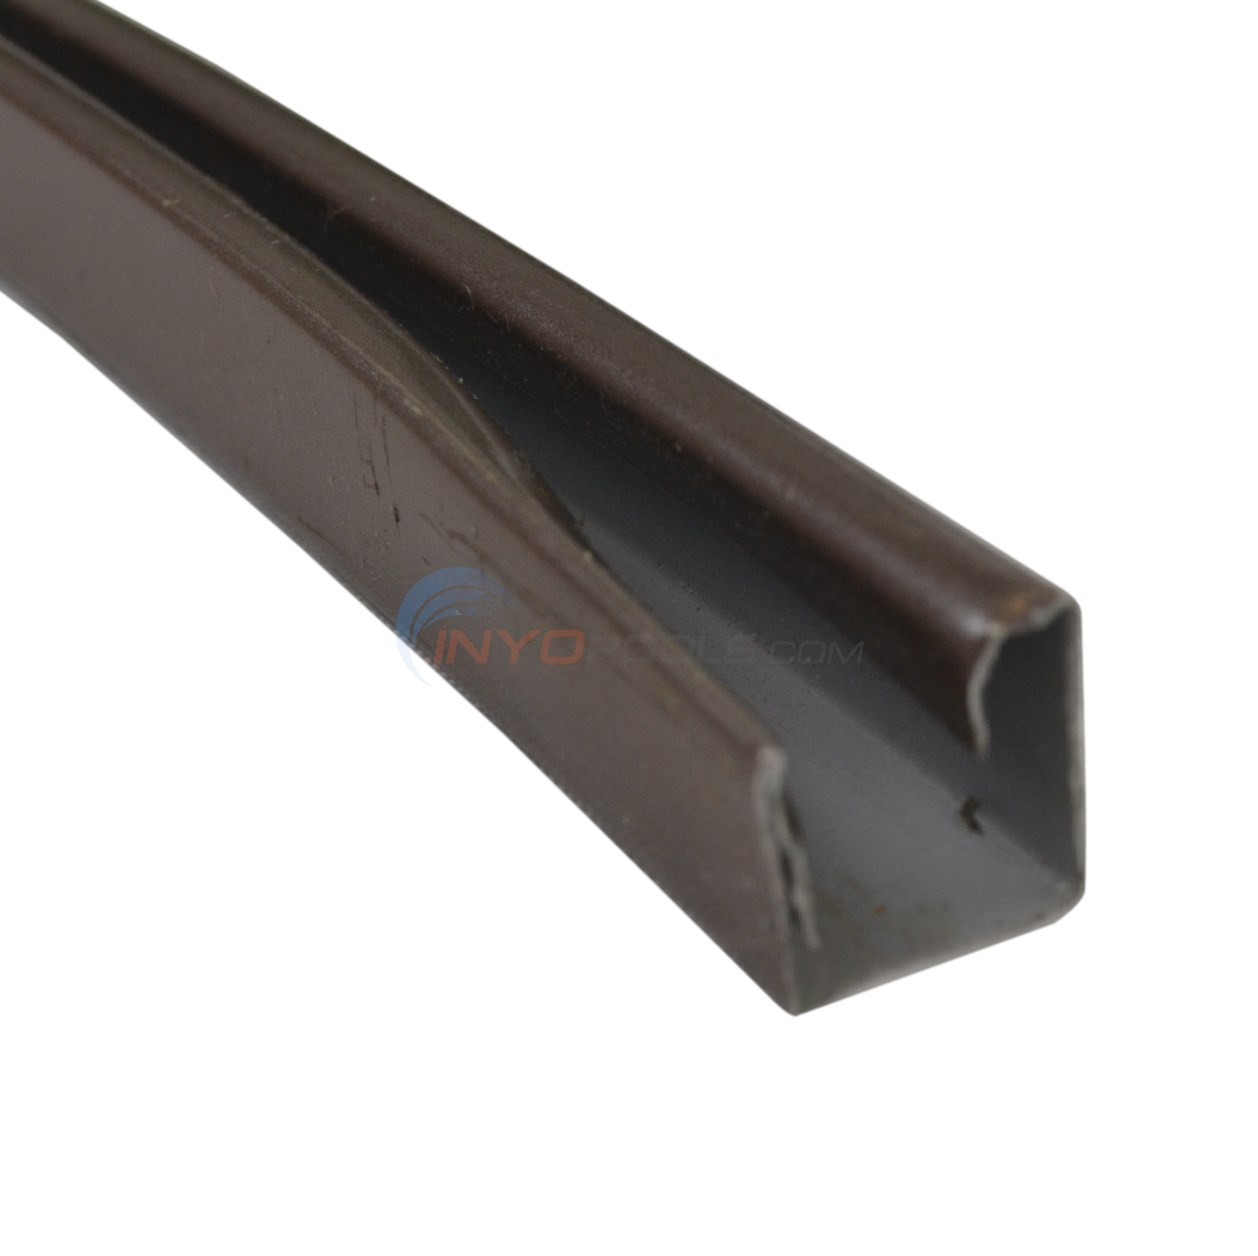 "Wilbar 24' Bottom Rail 55-1/2"" (Single) For The Atlantis 1460052"